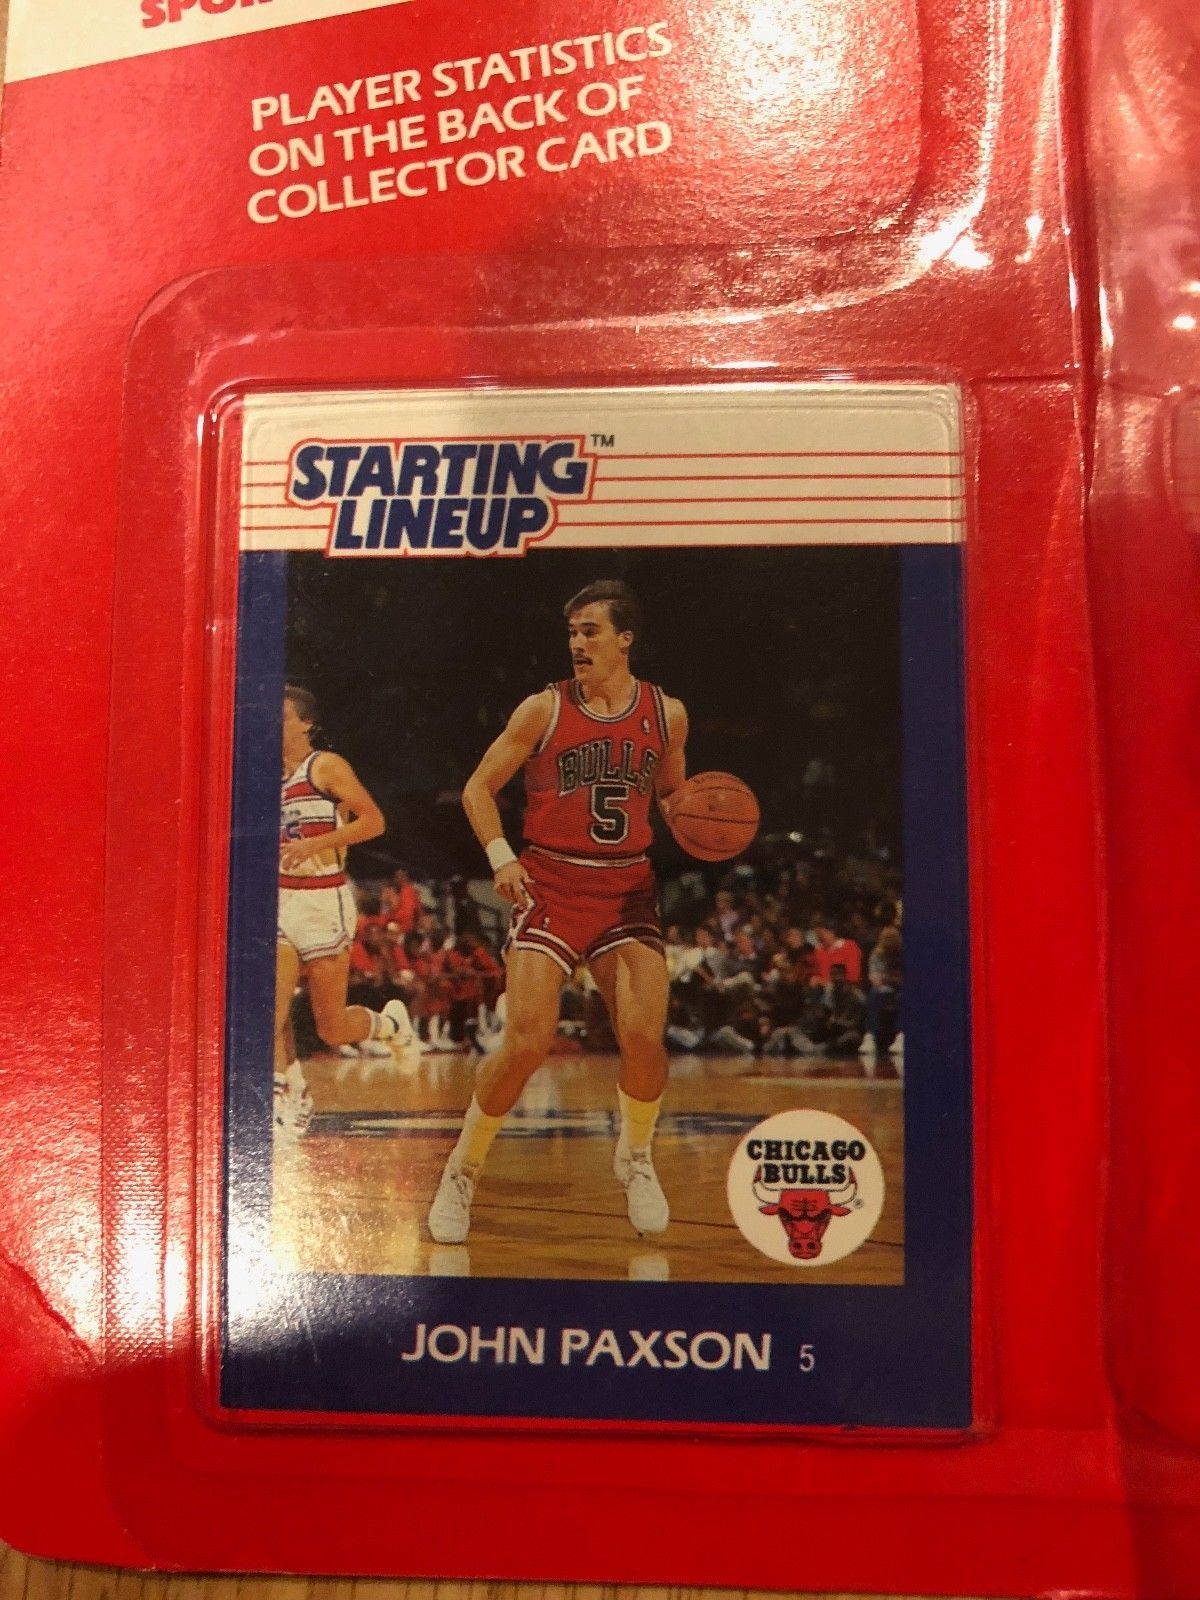 JOHN PAXSON Signed Chicago Bulls Starting Lineup Action Figure PHOTO JSA COA